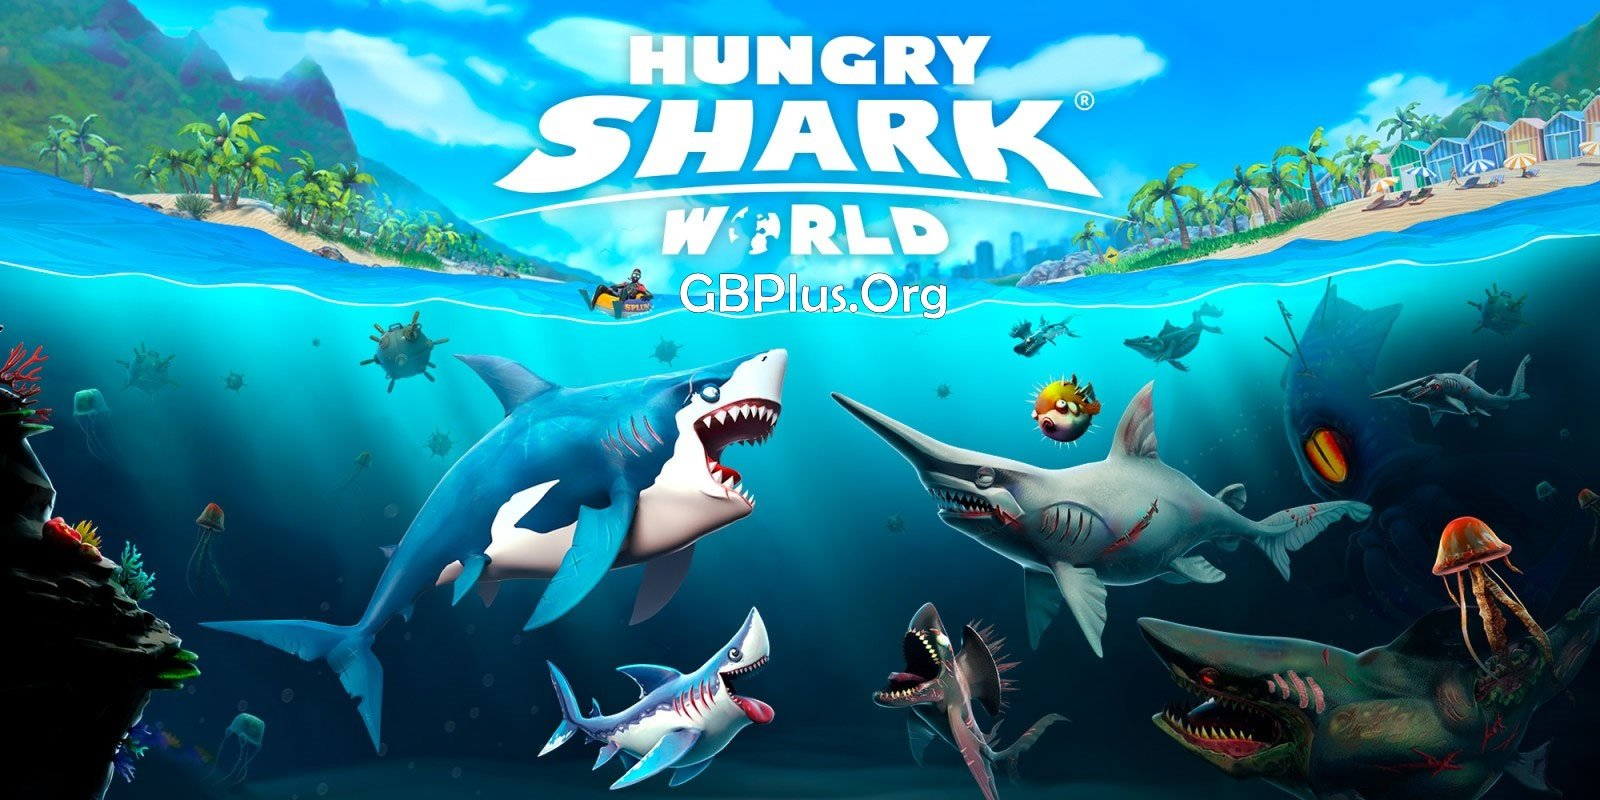 Hungry Shark World Mod APK Download 4.2.0 Latest For Andriod